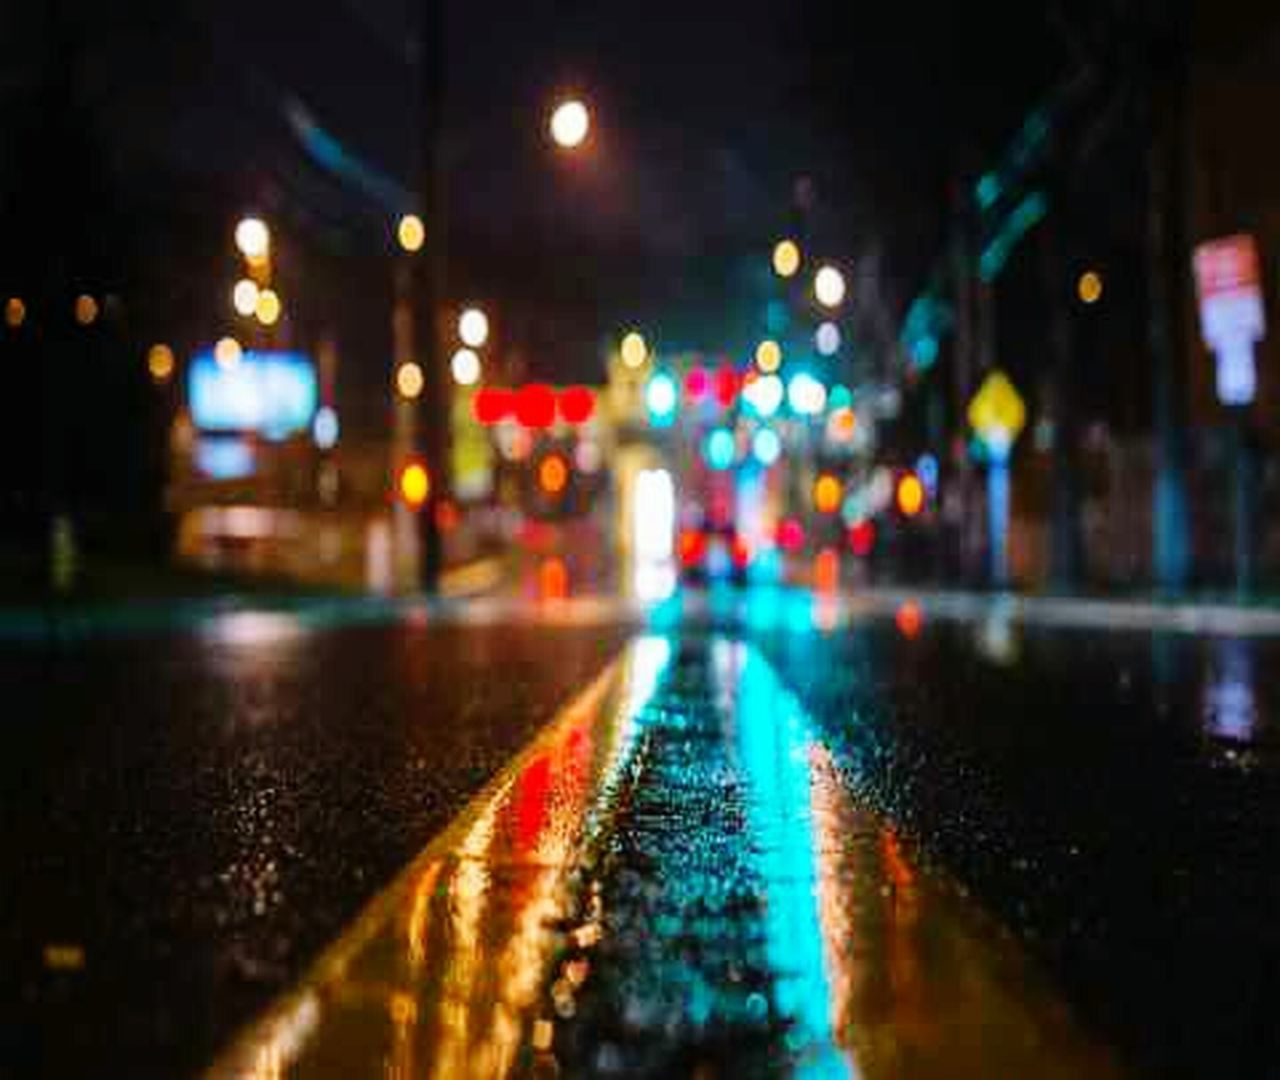 night, street, rain, illuminated, wet, city street, city, city life, weather, road, car, rainy season, traffic, transportation, street light, reflection, outdoors, no people, stoplight, torrential rain, puddle, water, raindrop, yellow taxi, cityscape, defocused